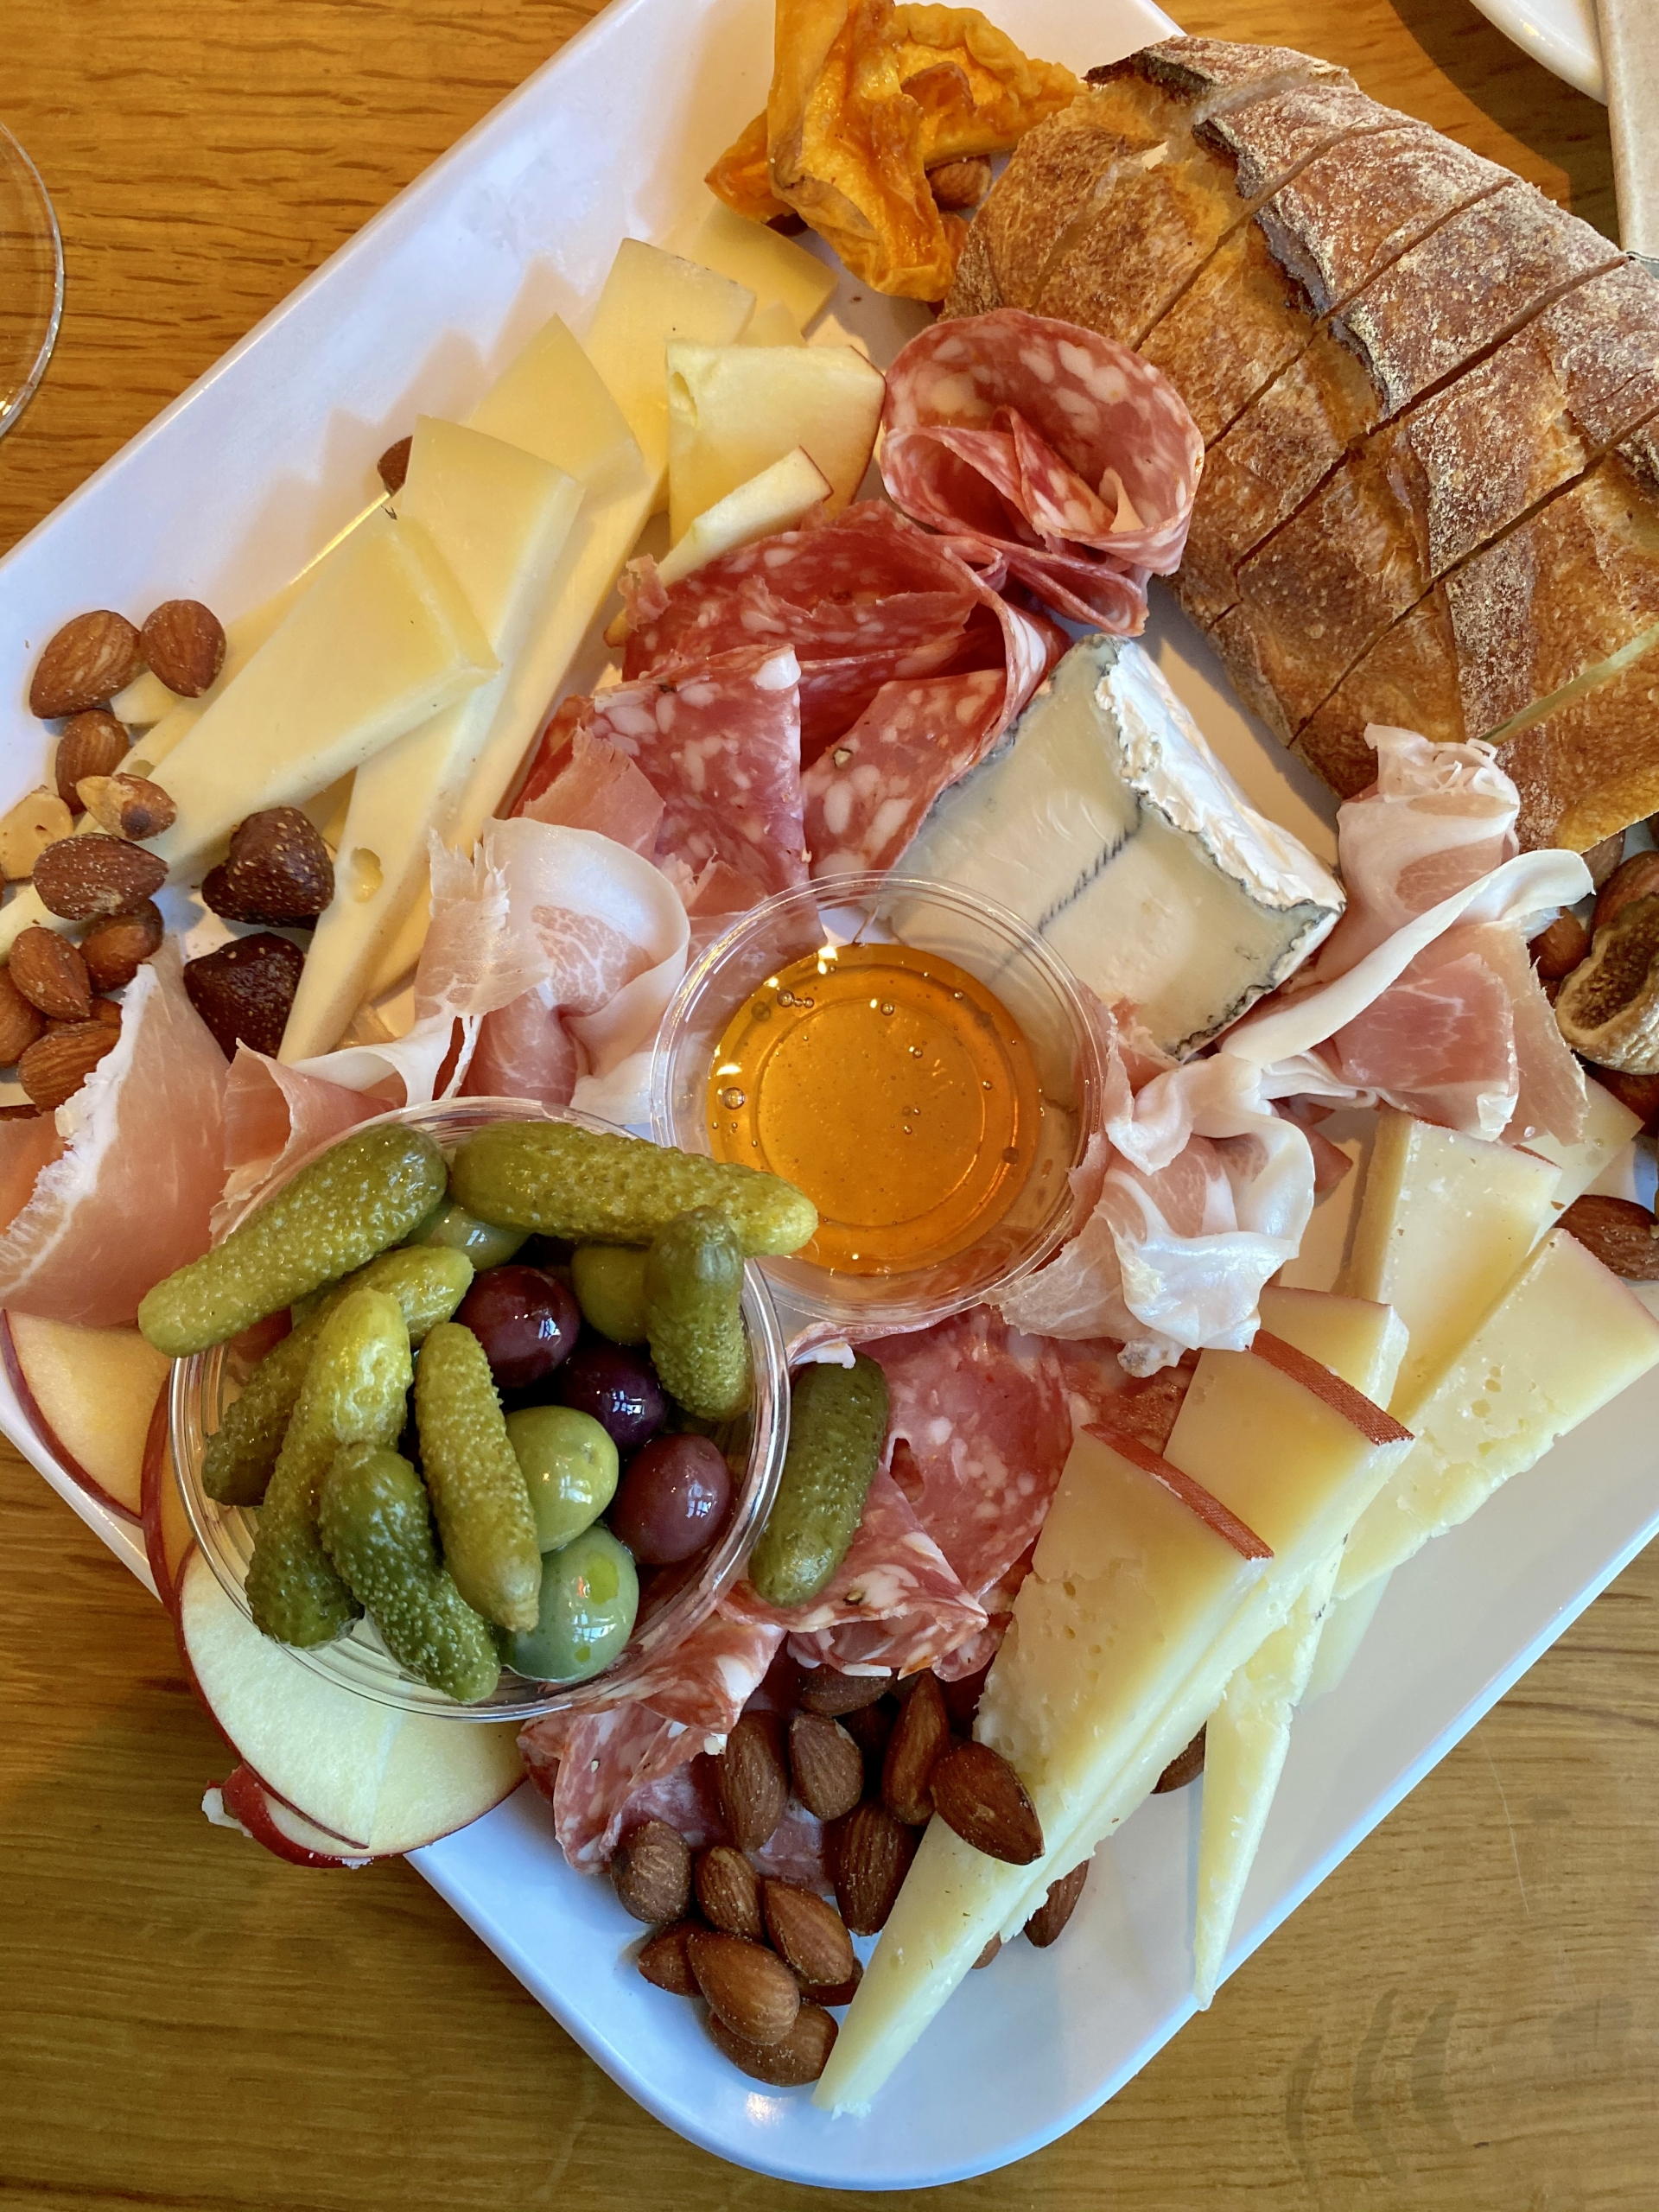 Cheese and charcuterie board from Oxbow Cheese and Wine Merchant